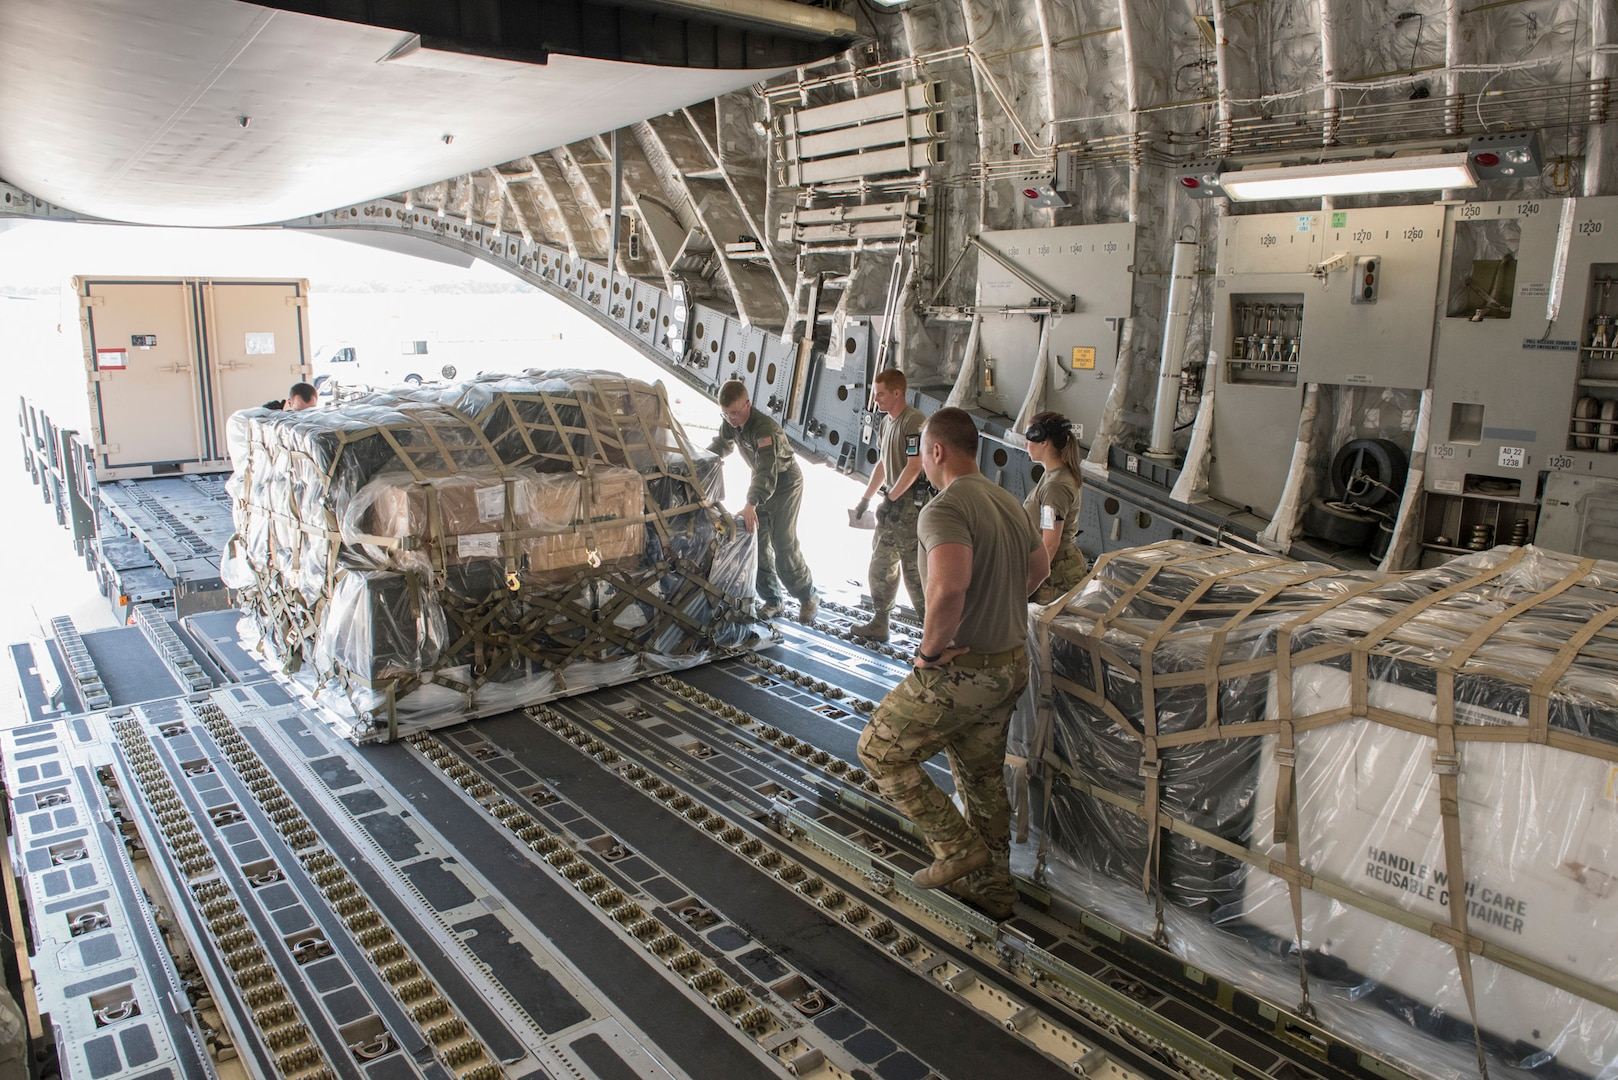 Aerial transportation specialists and loadmasters from the 167th Airlift Wing, West Virginia National Guard, and 123rd Airlift Wing, Kentucky National Guard, load palletized cargo onto a C-17 Globemaster III aircraft during a cargo loading exercise at the 167th Airlift Wing, Martinsburg, West Virginia, July 14, 2021. The 167th hosted members from the 123rd for a small air terminal training in preparation for their upcoming deployment.